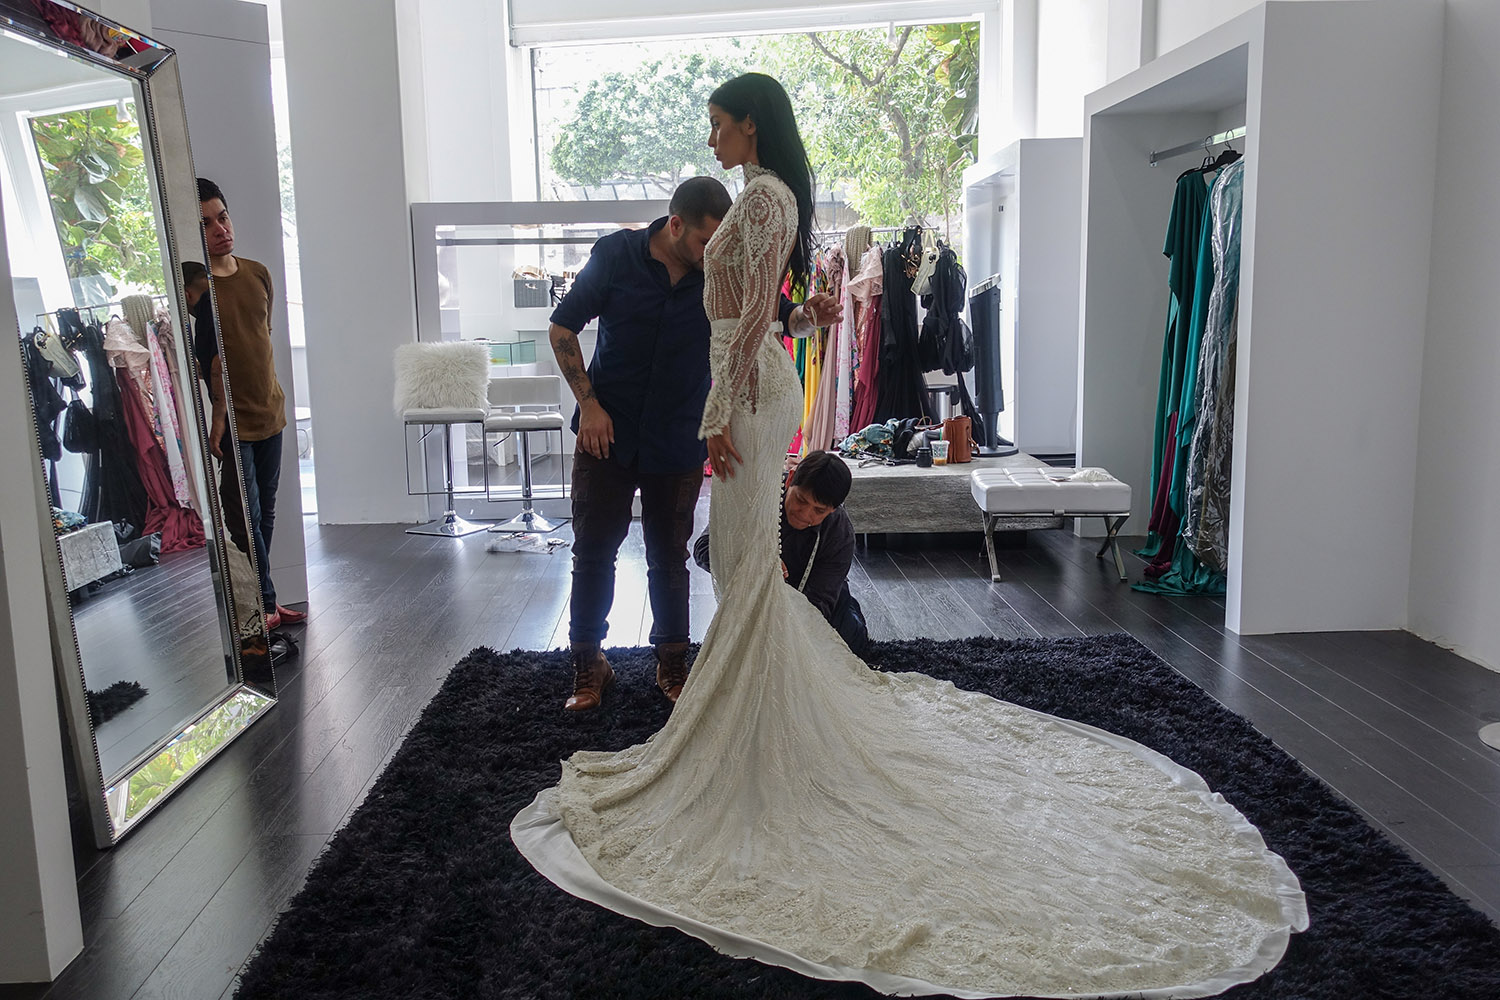 Nicole Williams wedding dress with long train by Michael Costello